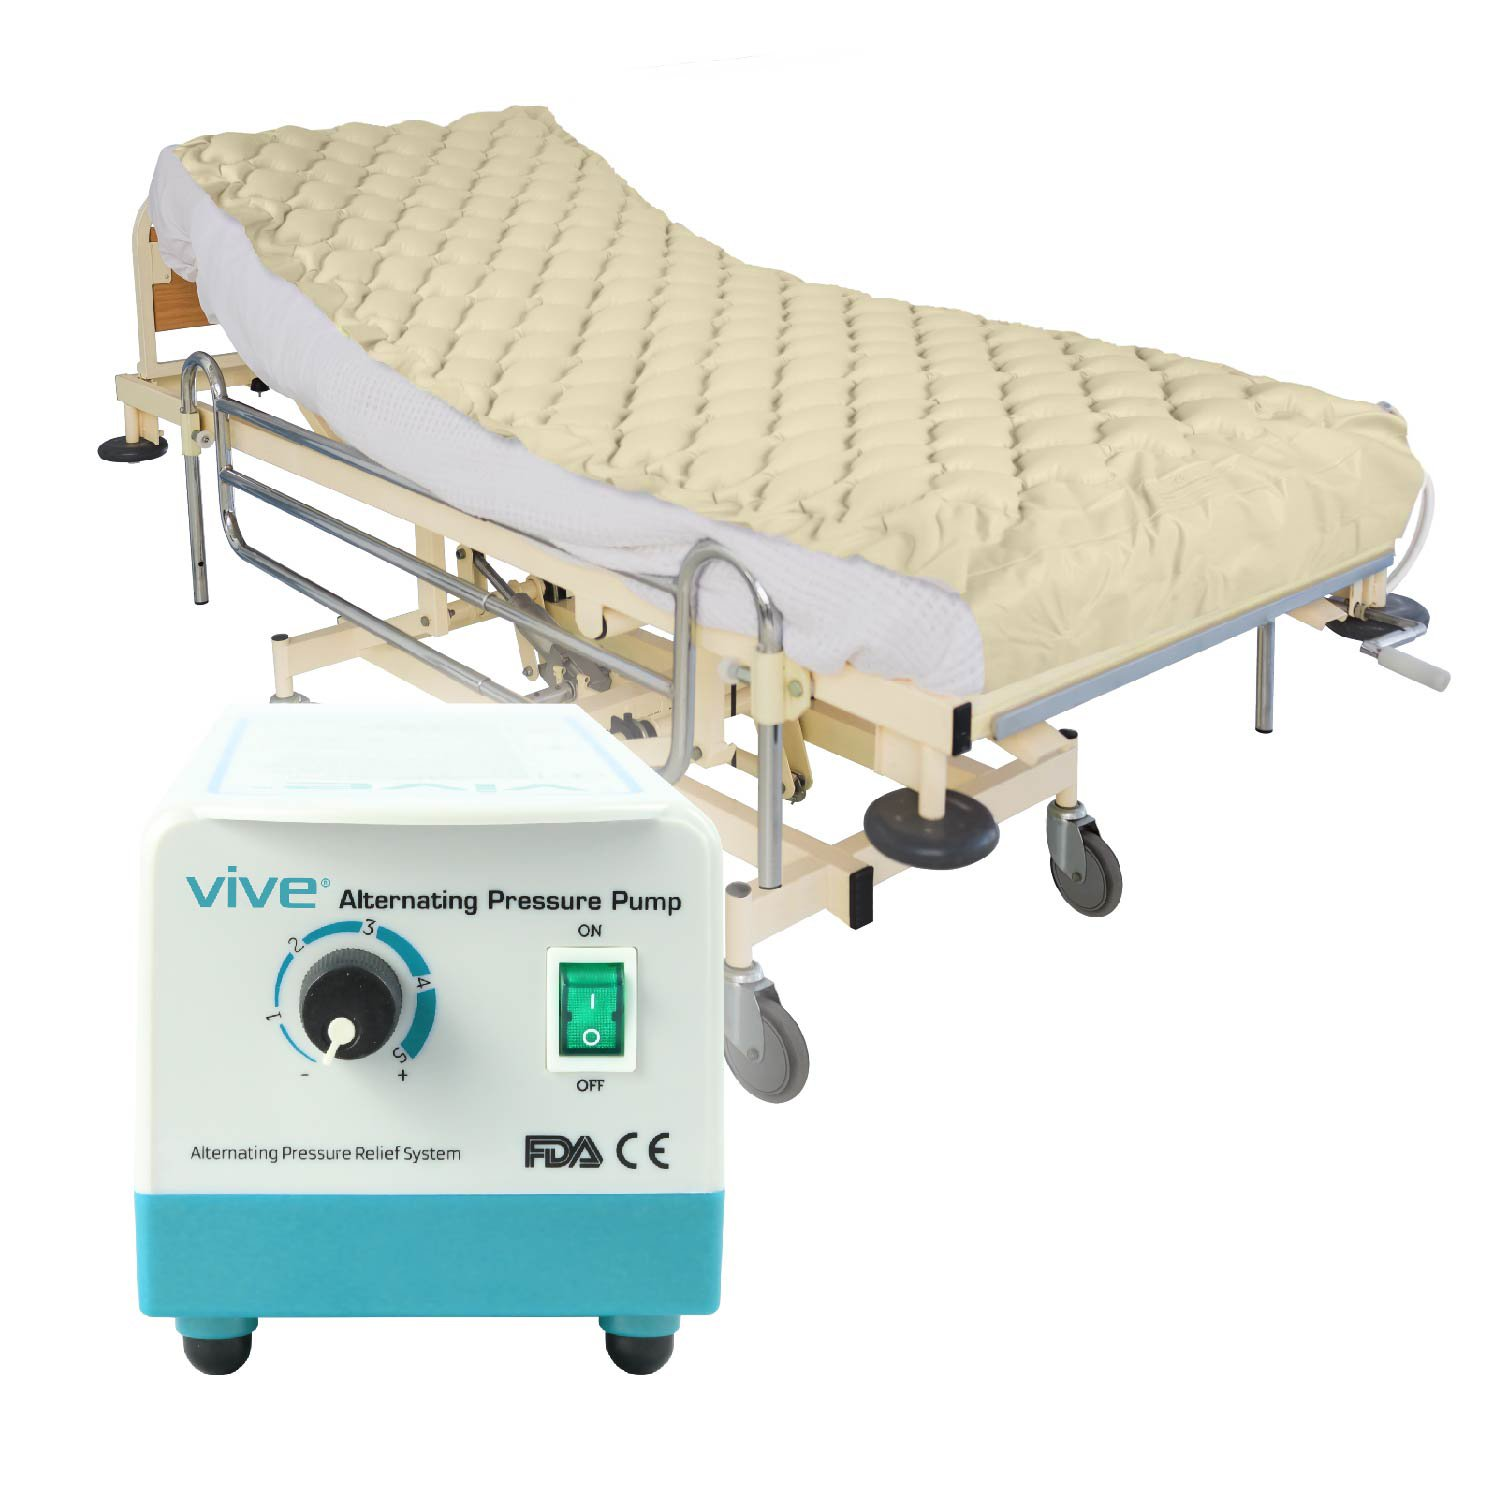 Vive Alternating Pressure Pad - Includes Mattress Pad and Electric Pump System - Quiet, Inflatable Bed Air Topper for Pressure Ulcer and Pressure Sore Treatment - Fits Standard Hospital Bed by Vive